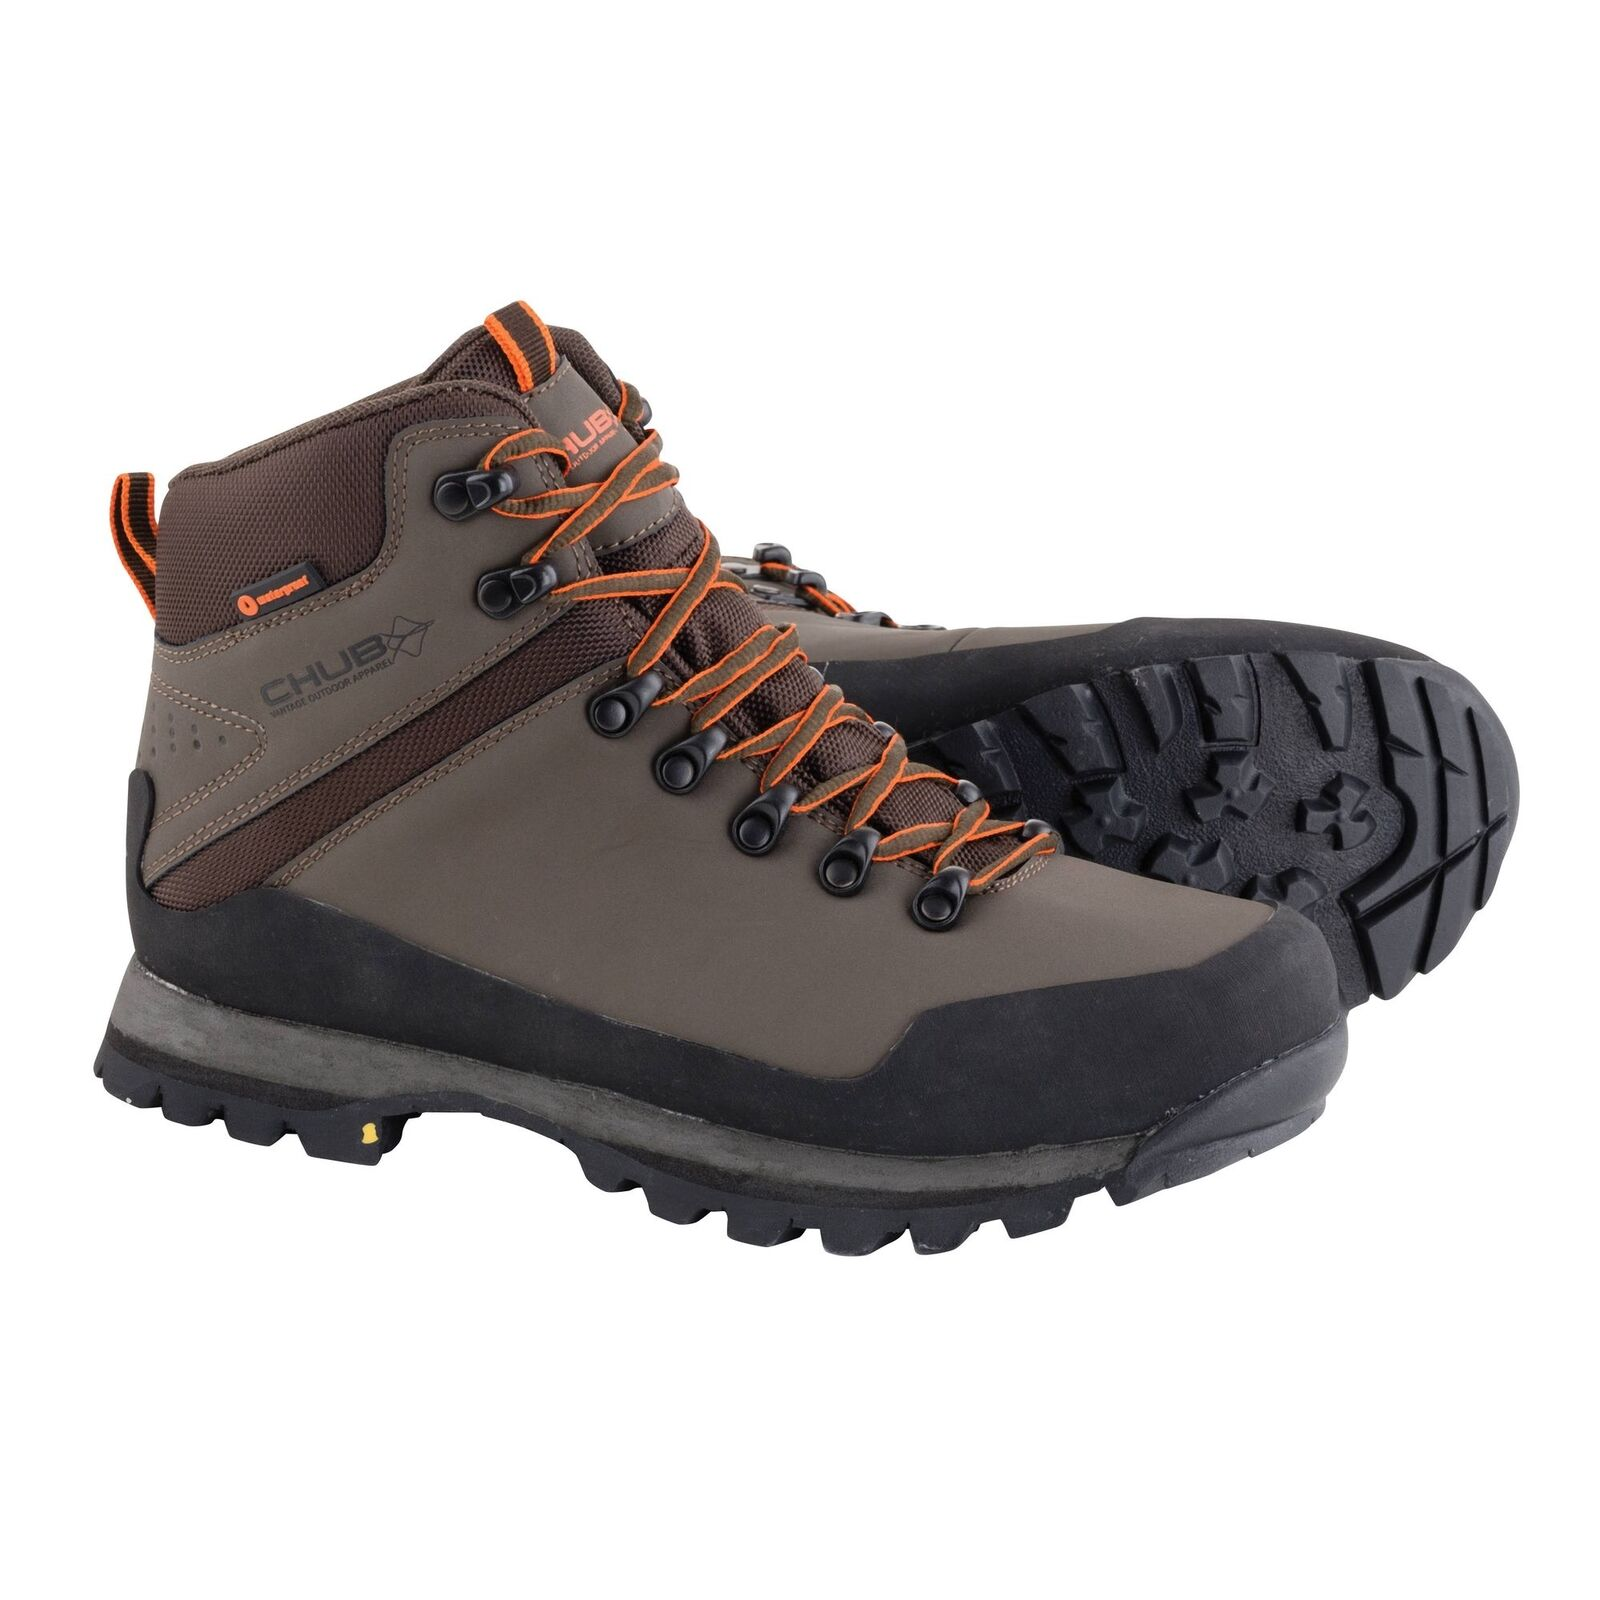 Chub Field Fishing Boots  angelschuhe waterproof shoes fisherman lined thermos  save 50%-75%off